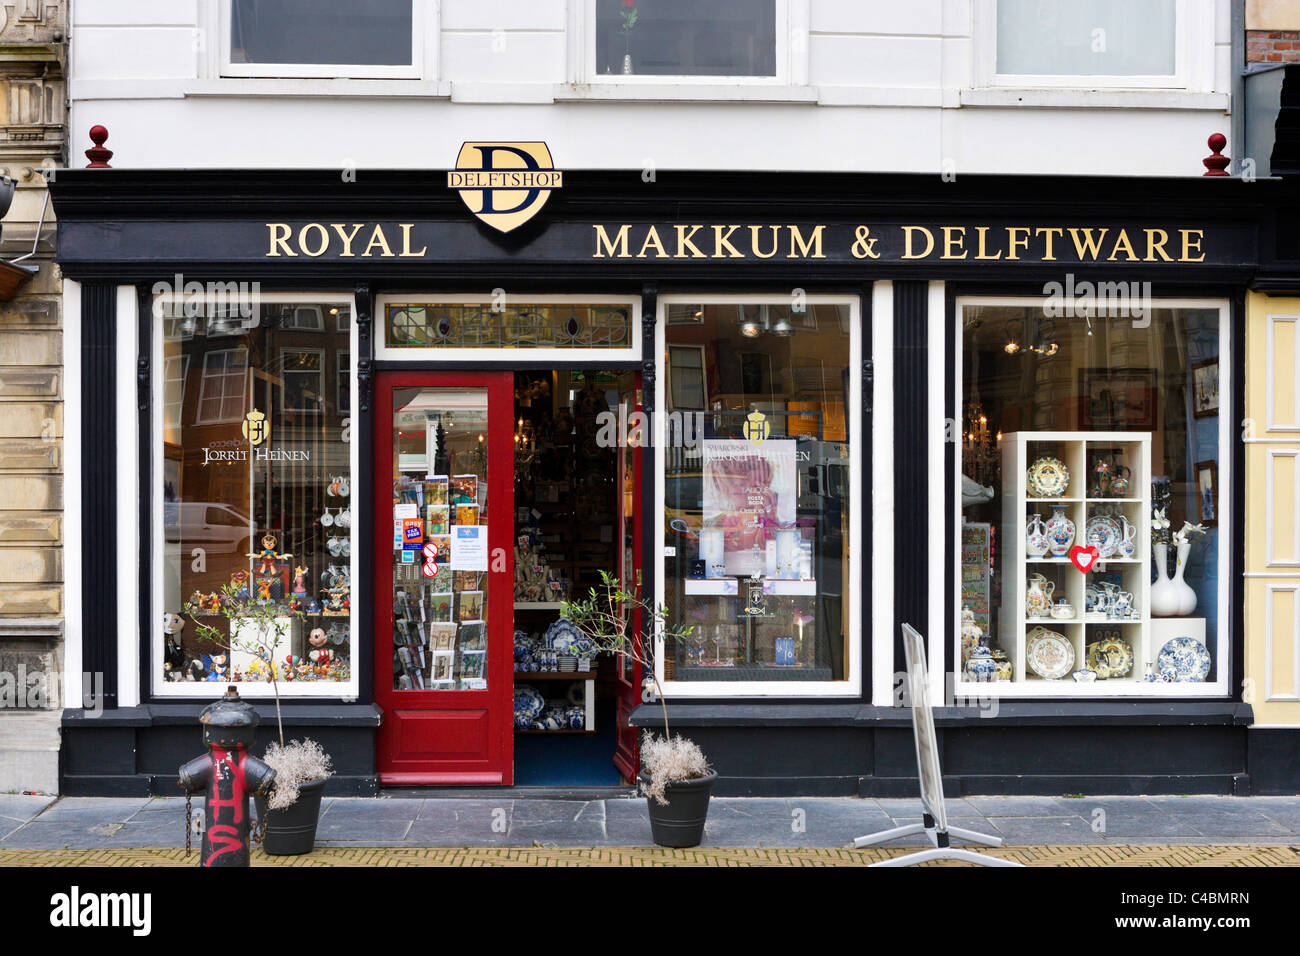 Shop selling Delft pottery in the Markt (Main Square), Delft, Netherlands - Stock Image